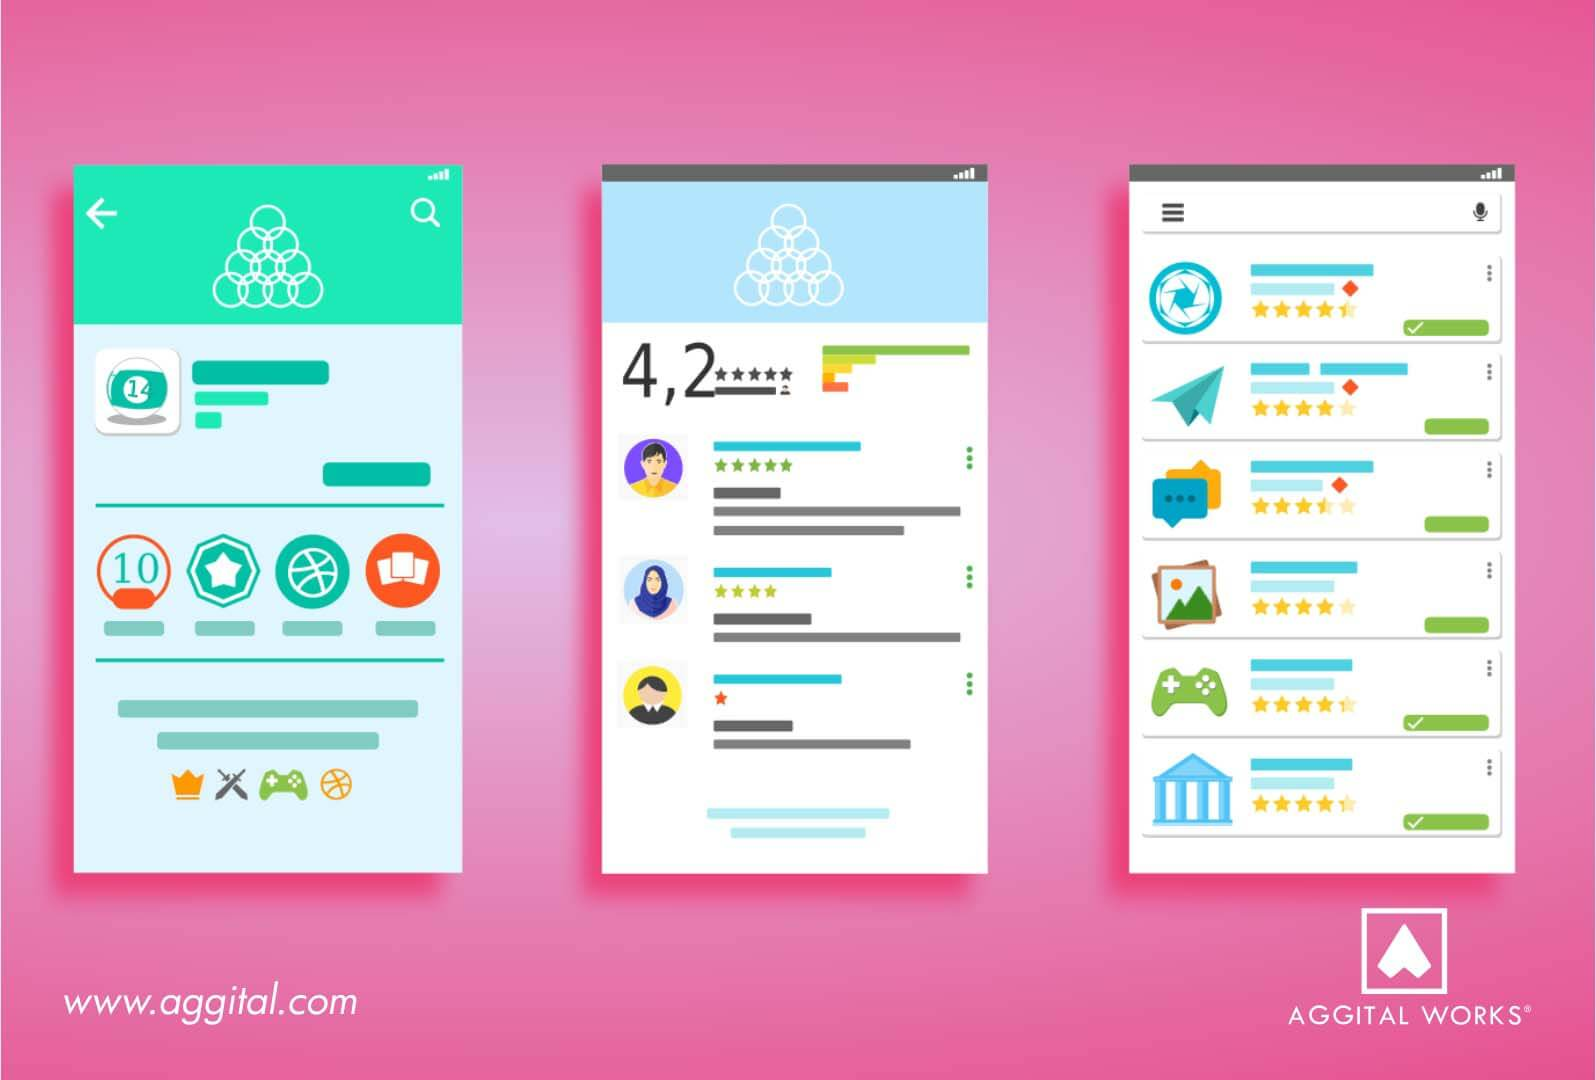 User Interface - 7 Guidelines To Improve Your Skills